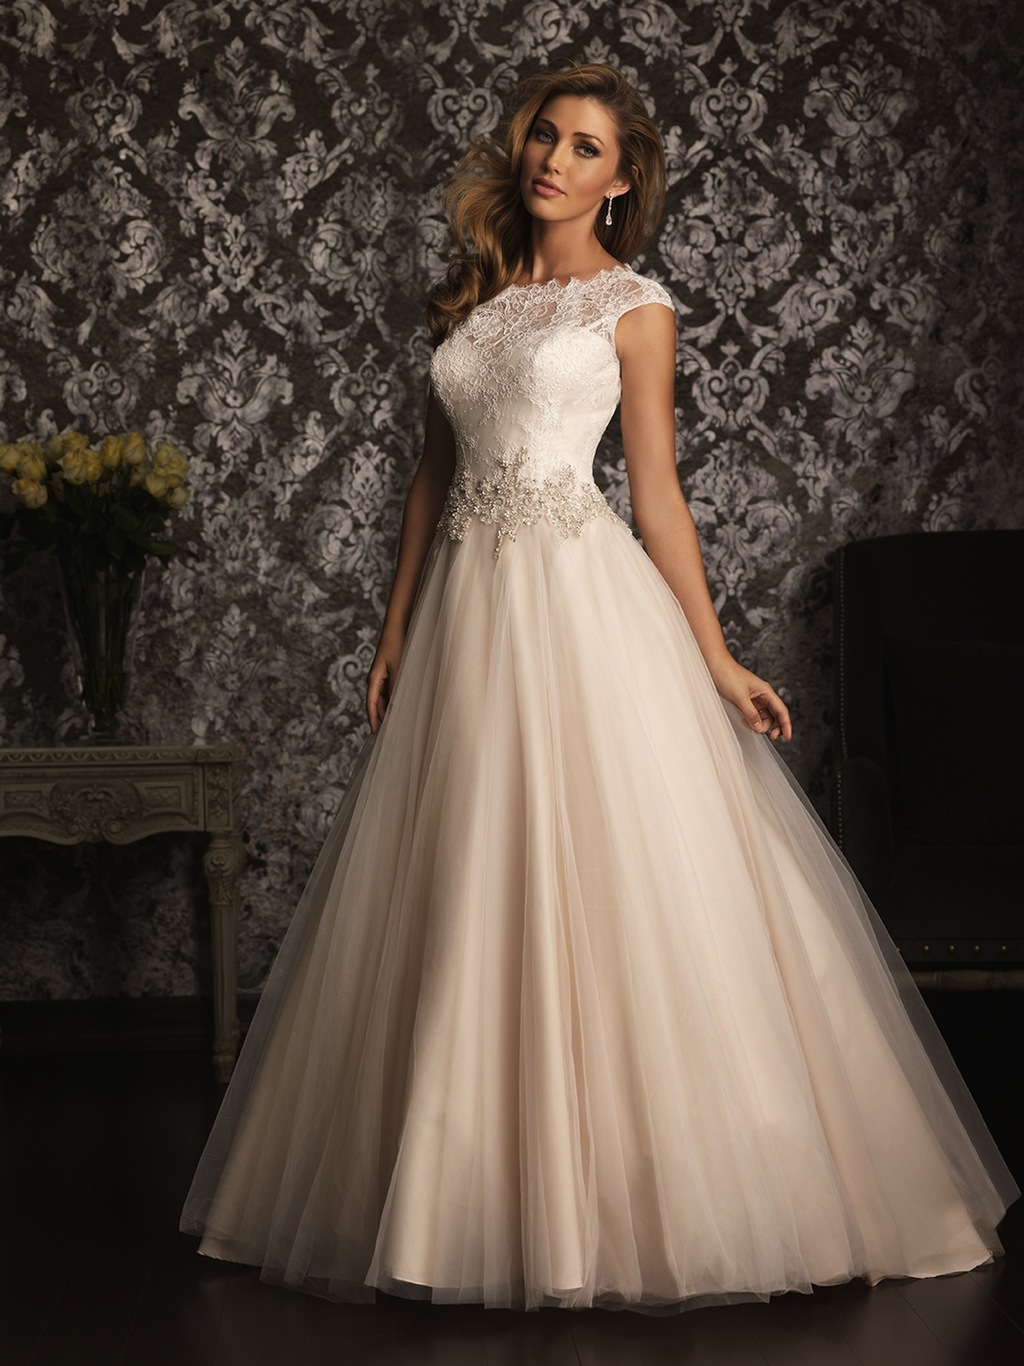 Allure-bridals-wedding-dress-bridal-gown-allure-collection-2013-9022f-2.full